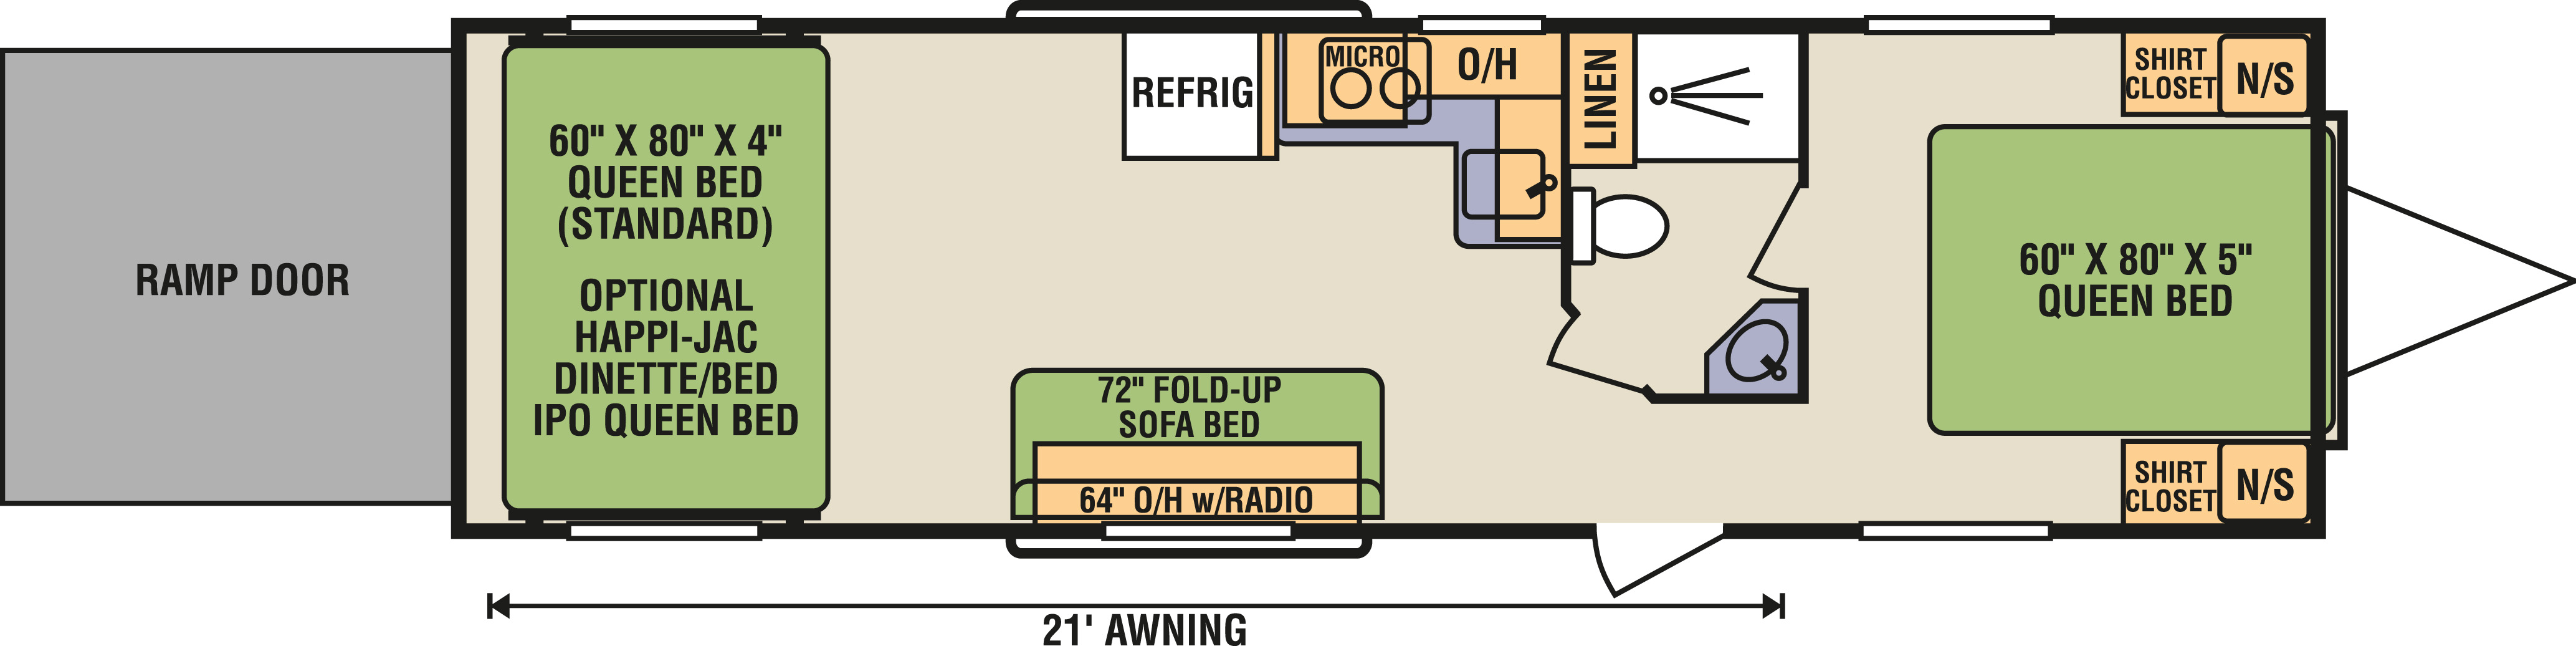 8.5x30FBR - Floorplan